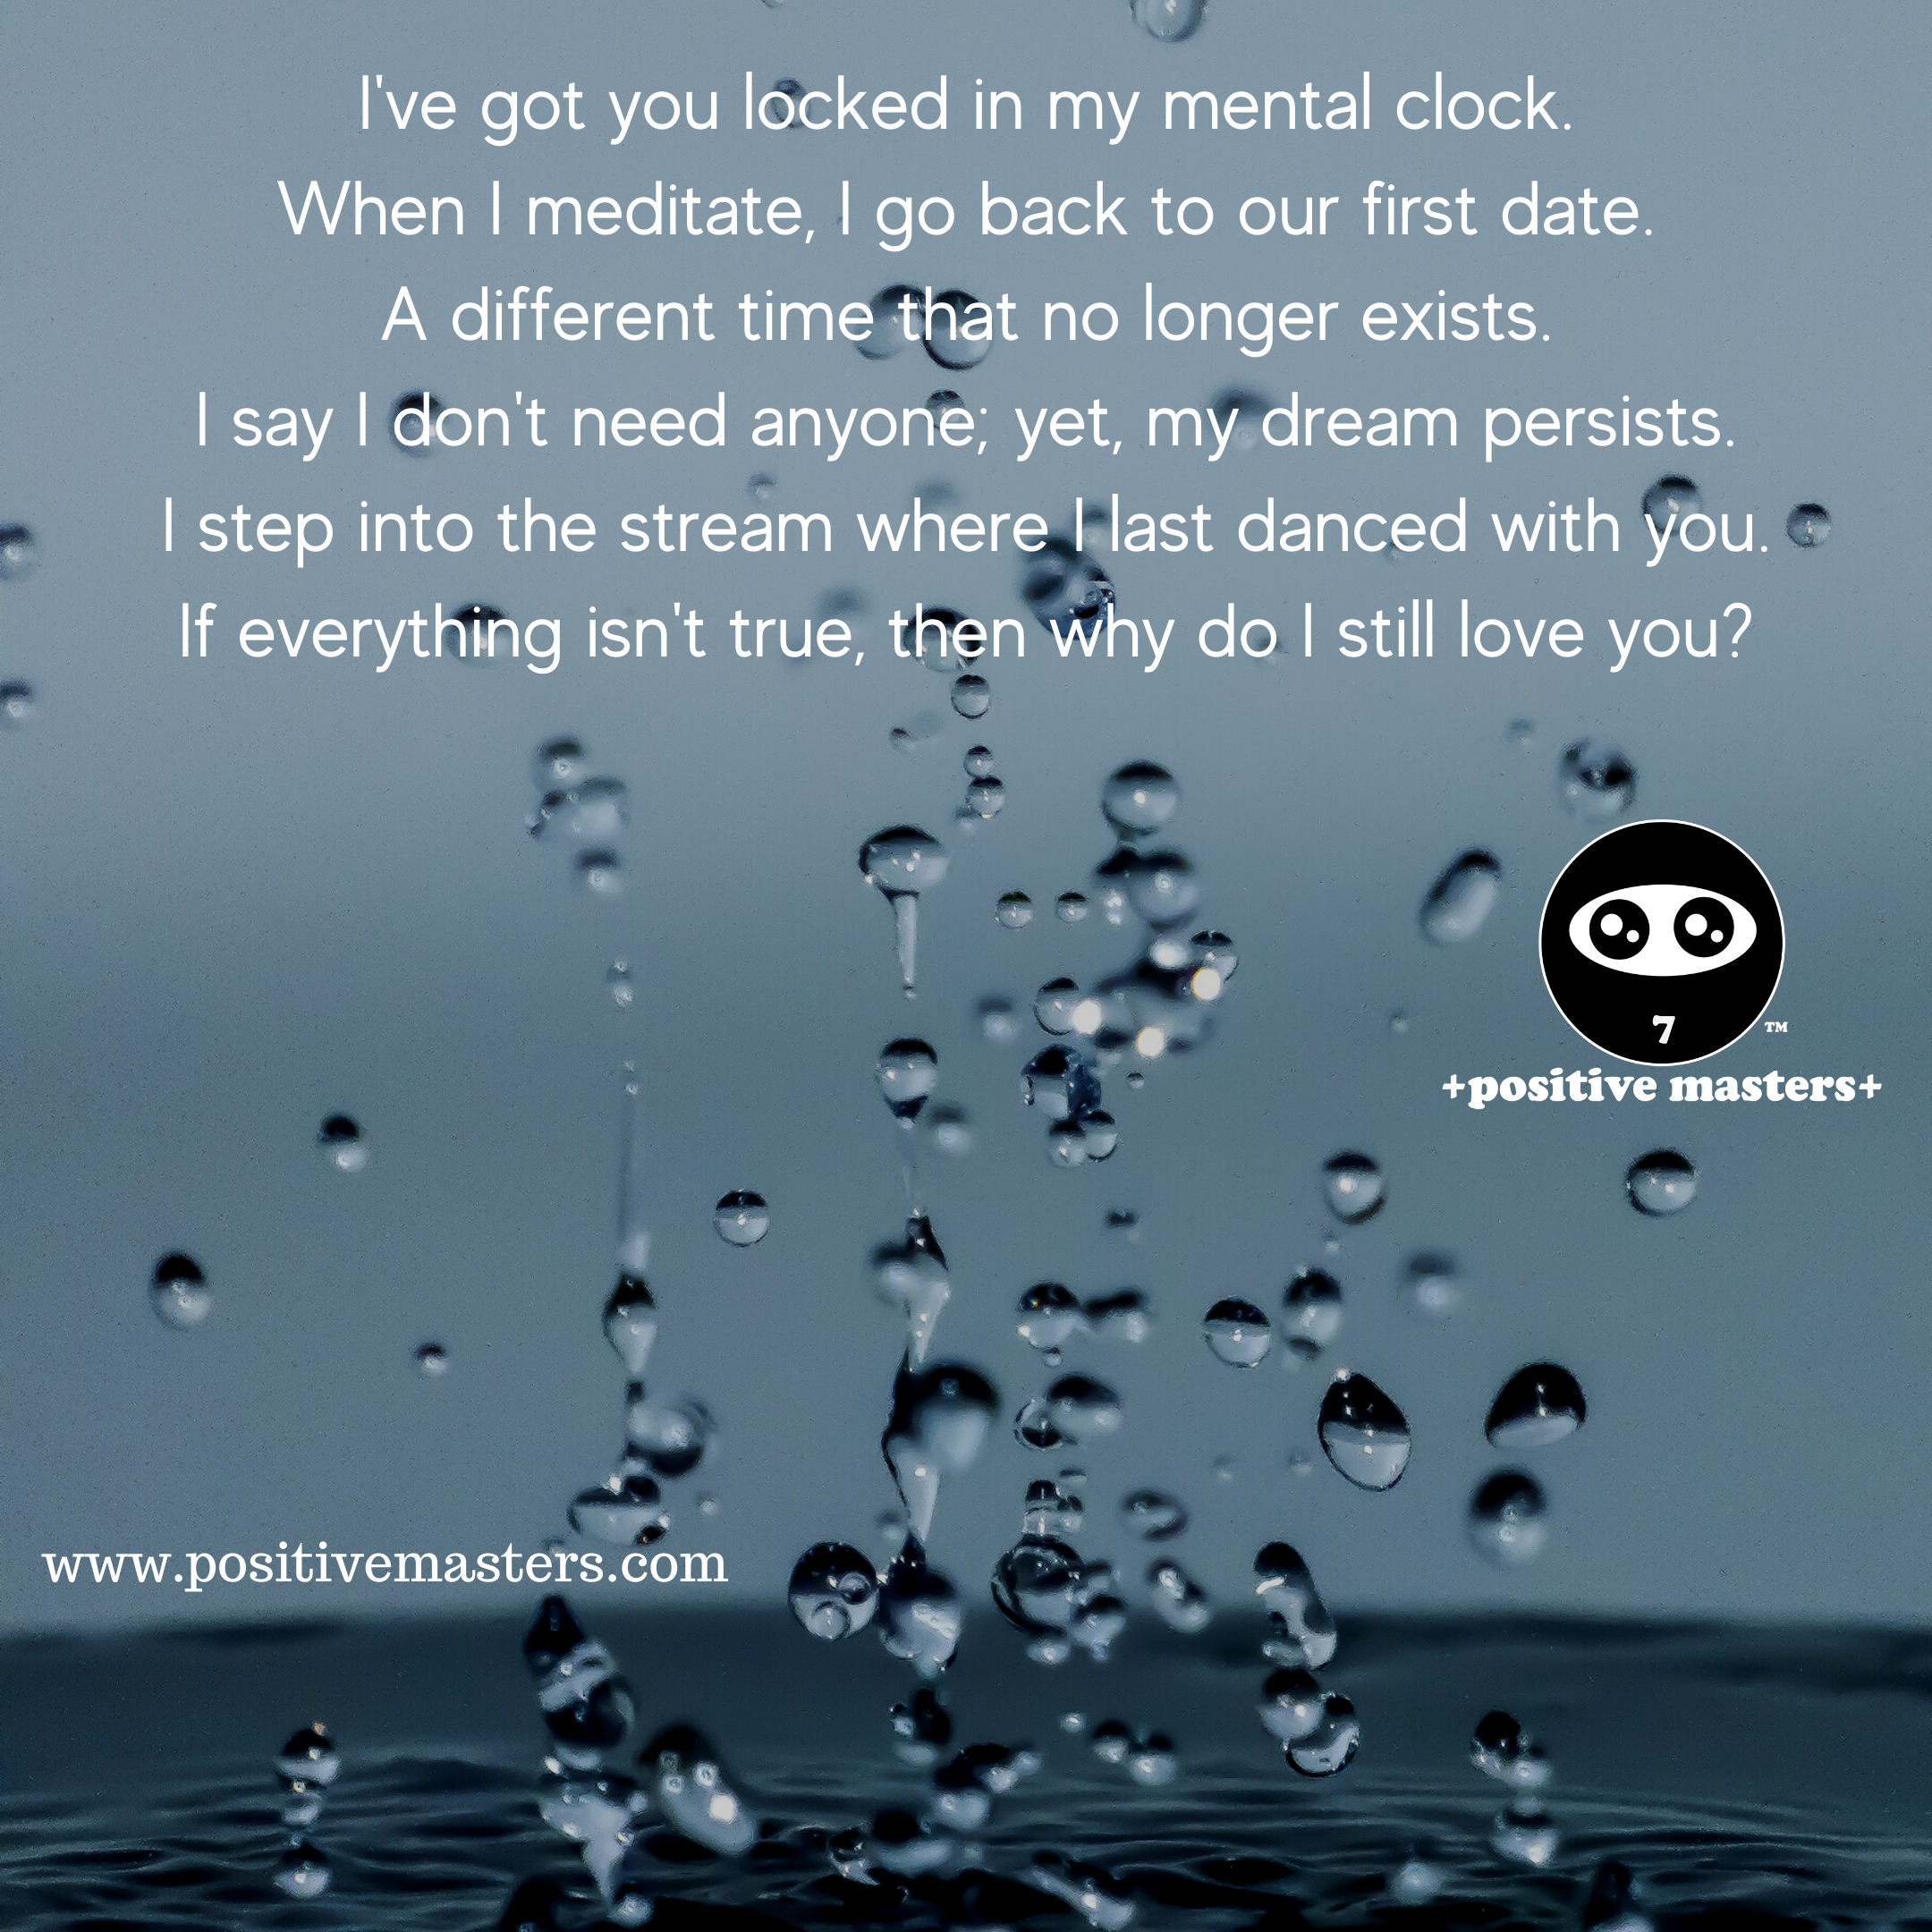 I've got you locked in my mental clock. A romantic poem based on my first novel.